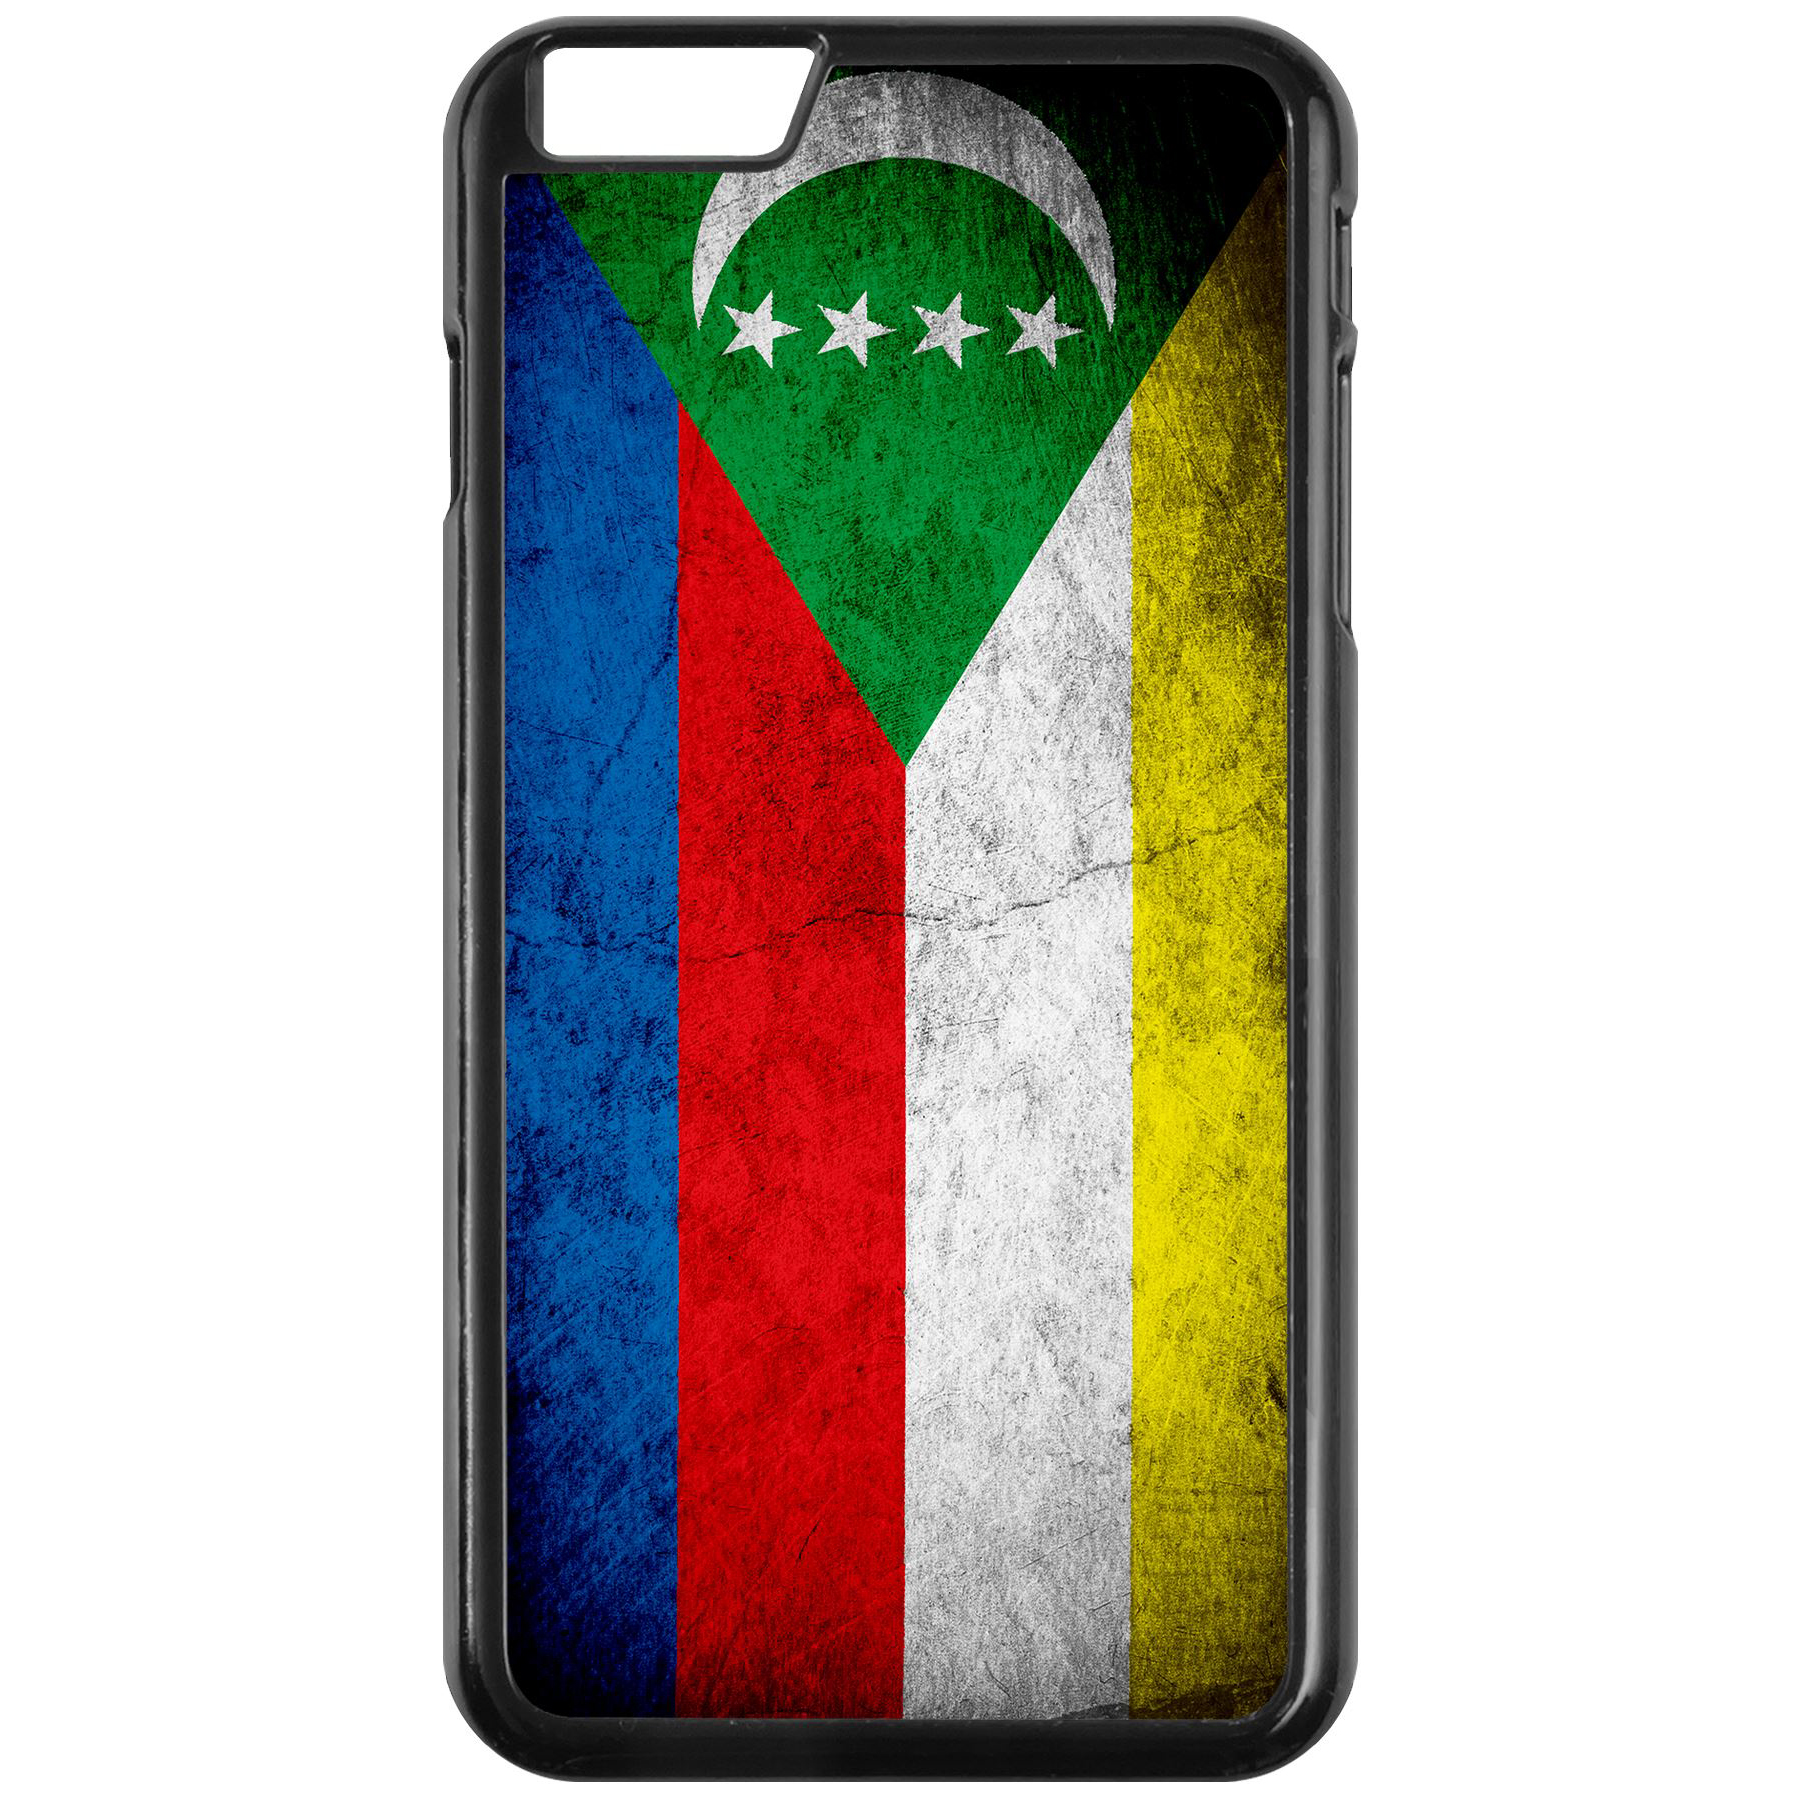 Apple-iPhone-Case-with-Flag-of-Comoros-Comorian-Many-Design-Options thumbnail 73